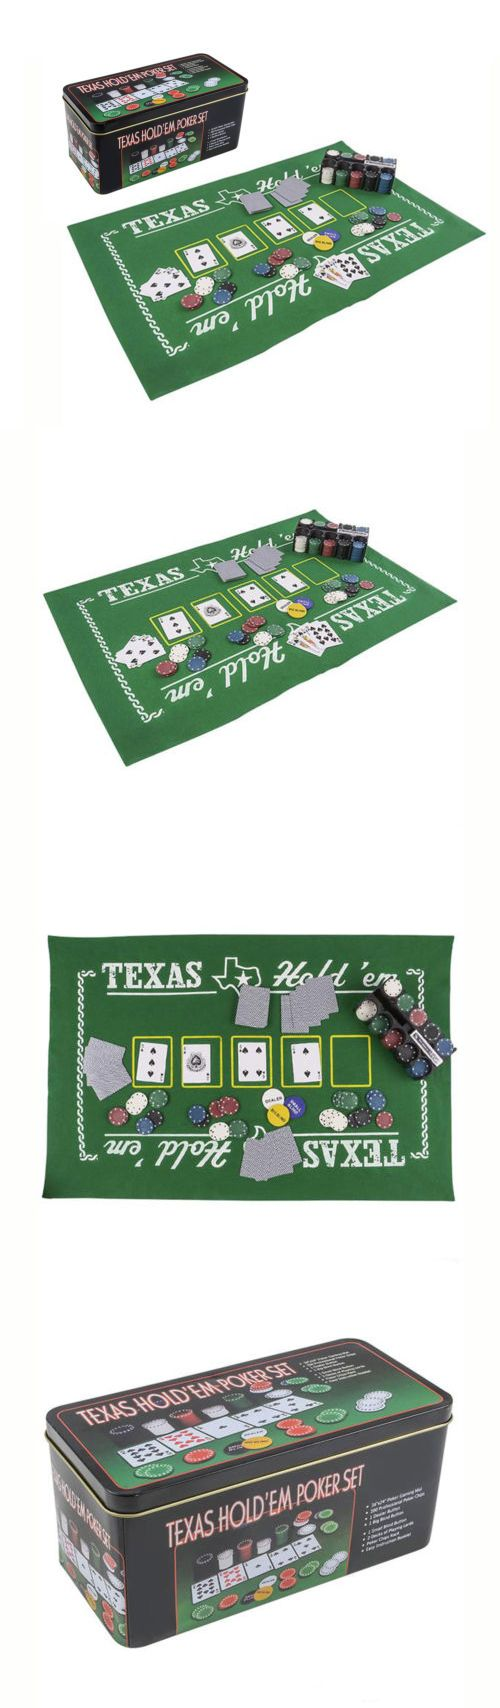 Card Tables And Tabletops 166572: Mozlly Texas Holdem Poker Casino Theme  With Play Mat Sport Gaming Set  U003e BUY IT NOW ONLY: $21.83 On EBay!